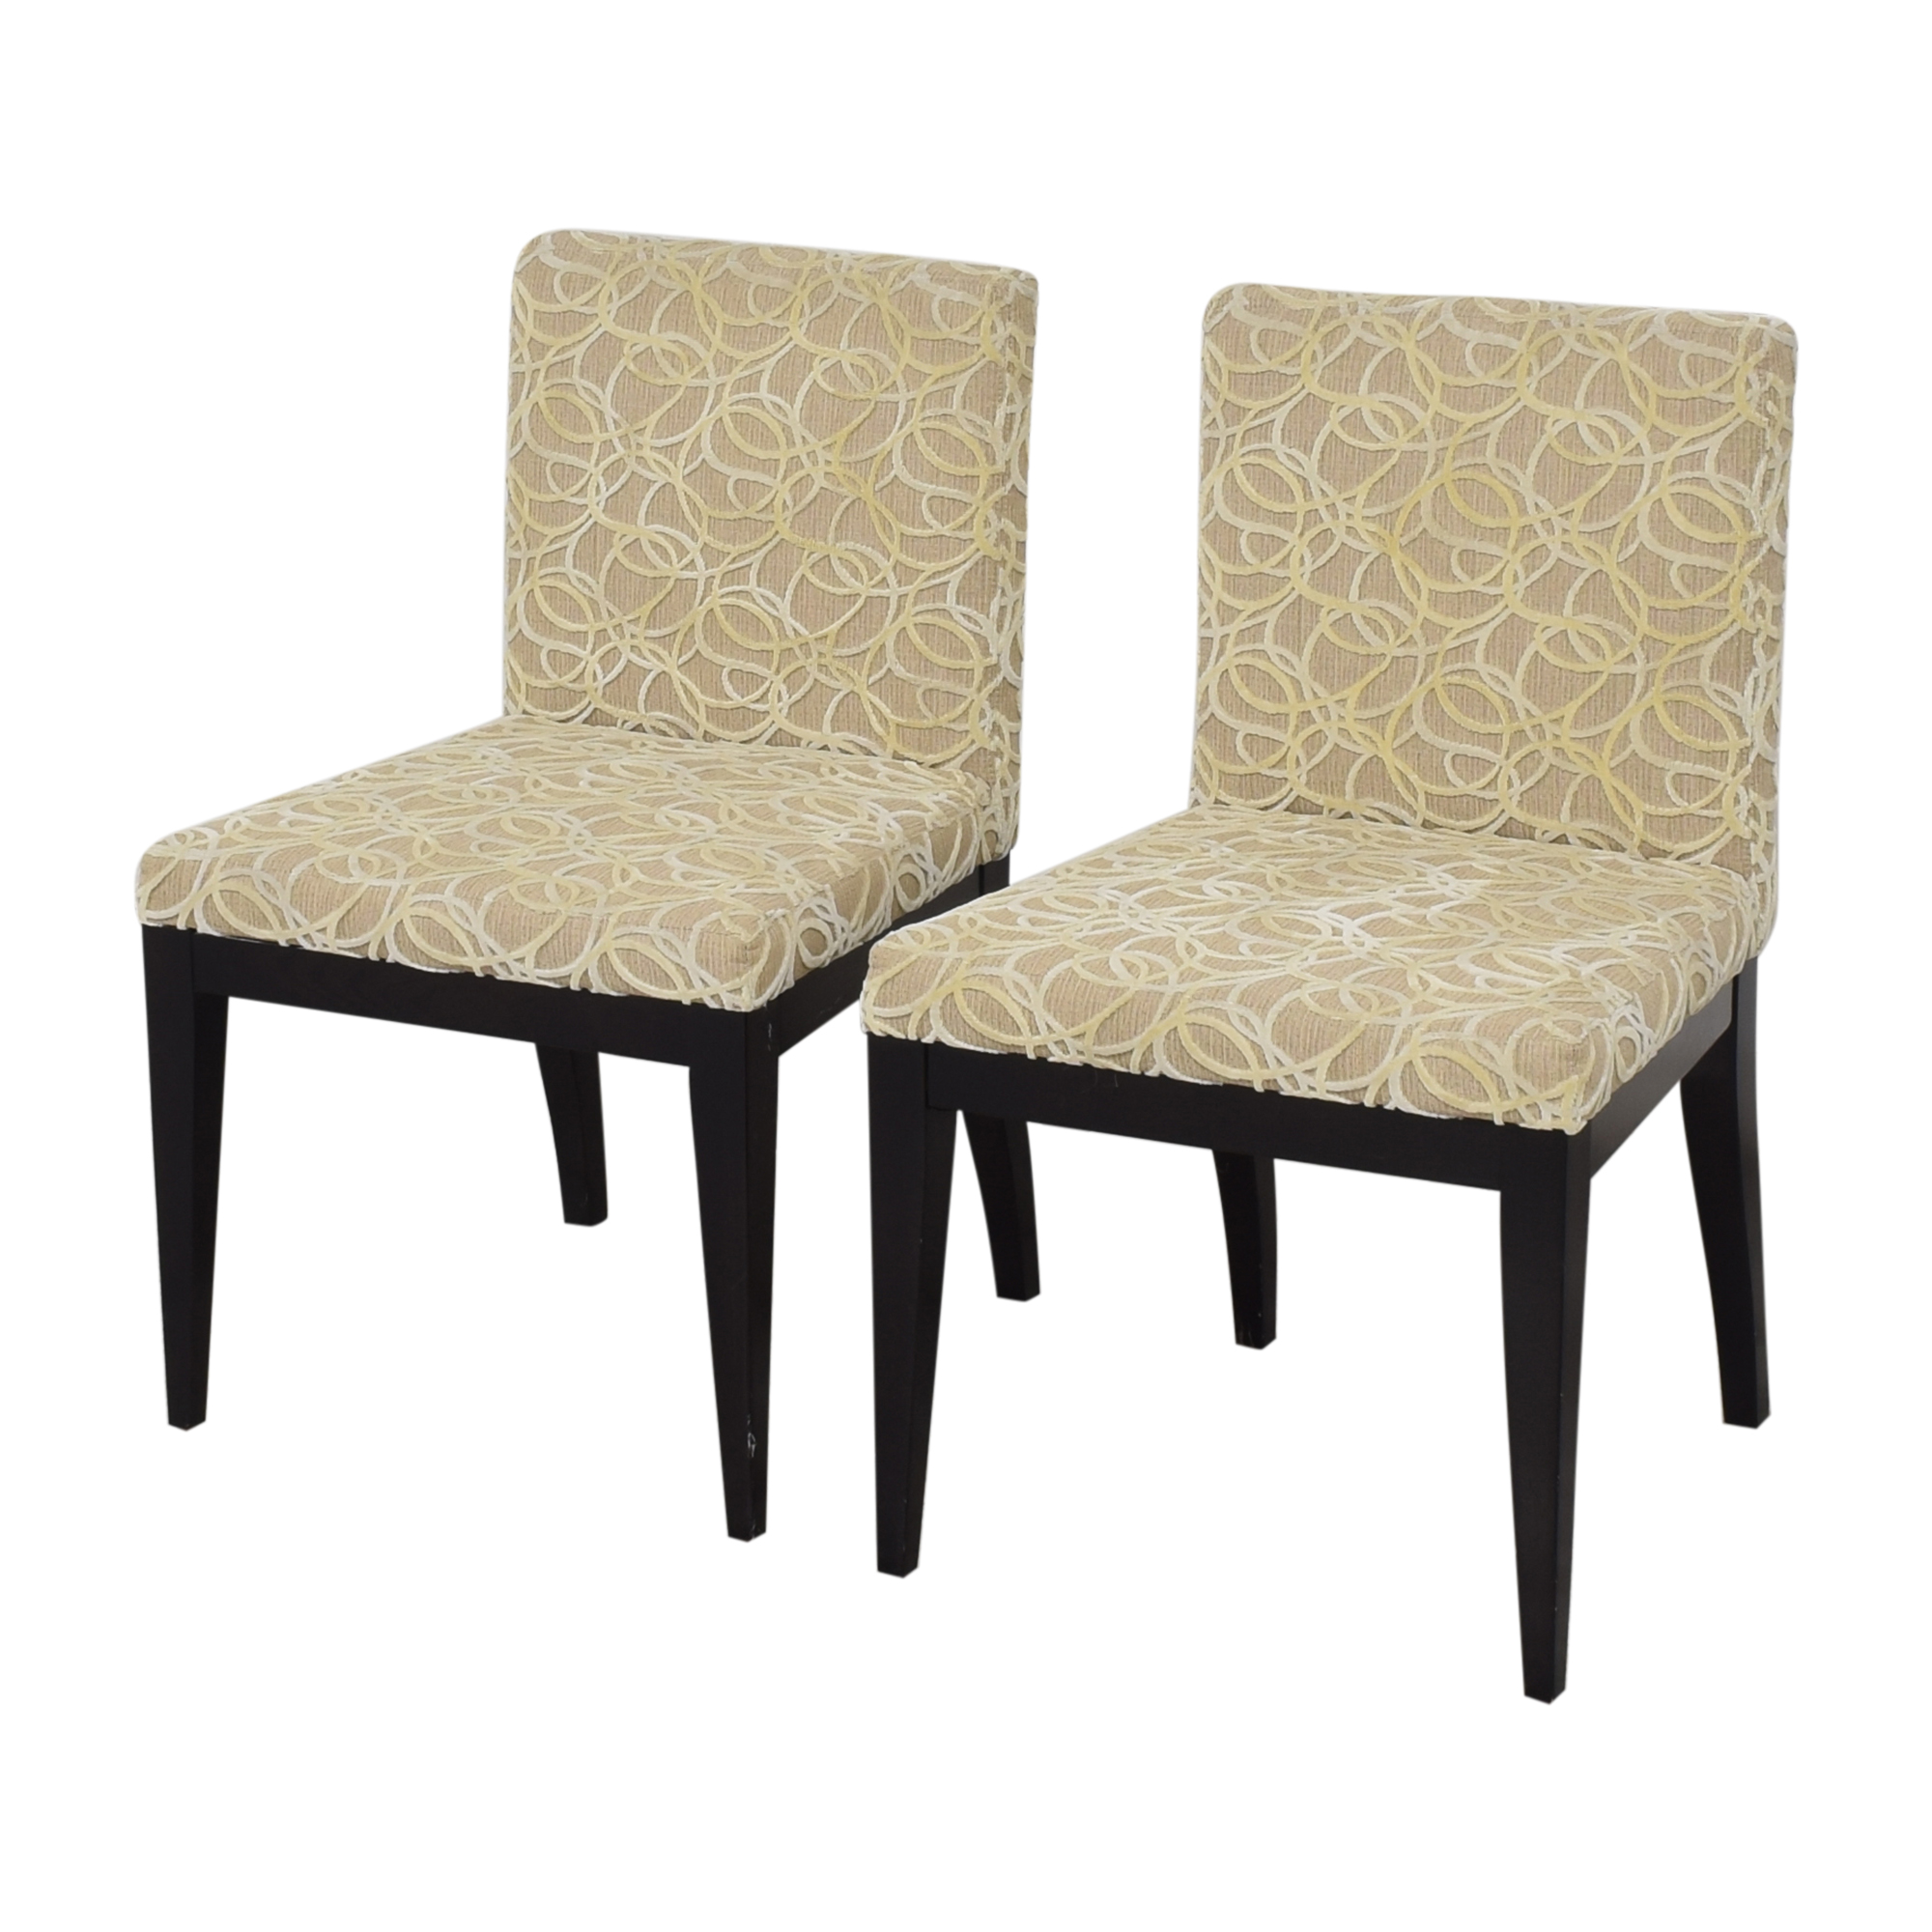 Bolier & Company Bolier & Company Upholstered Dining Chairs for sale